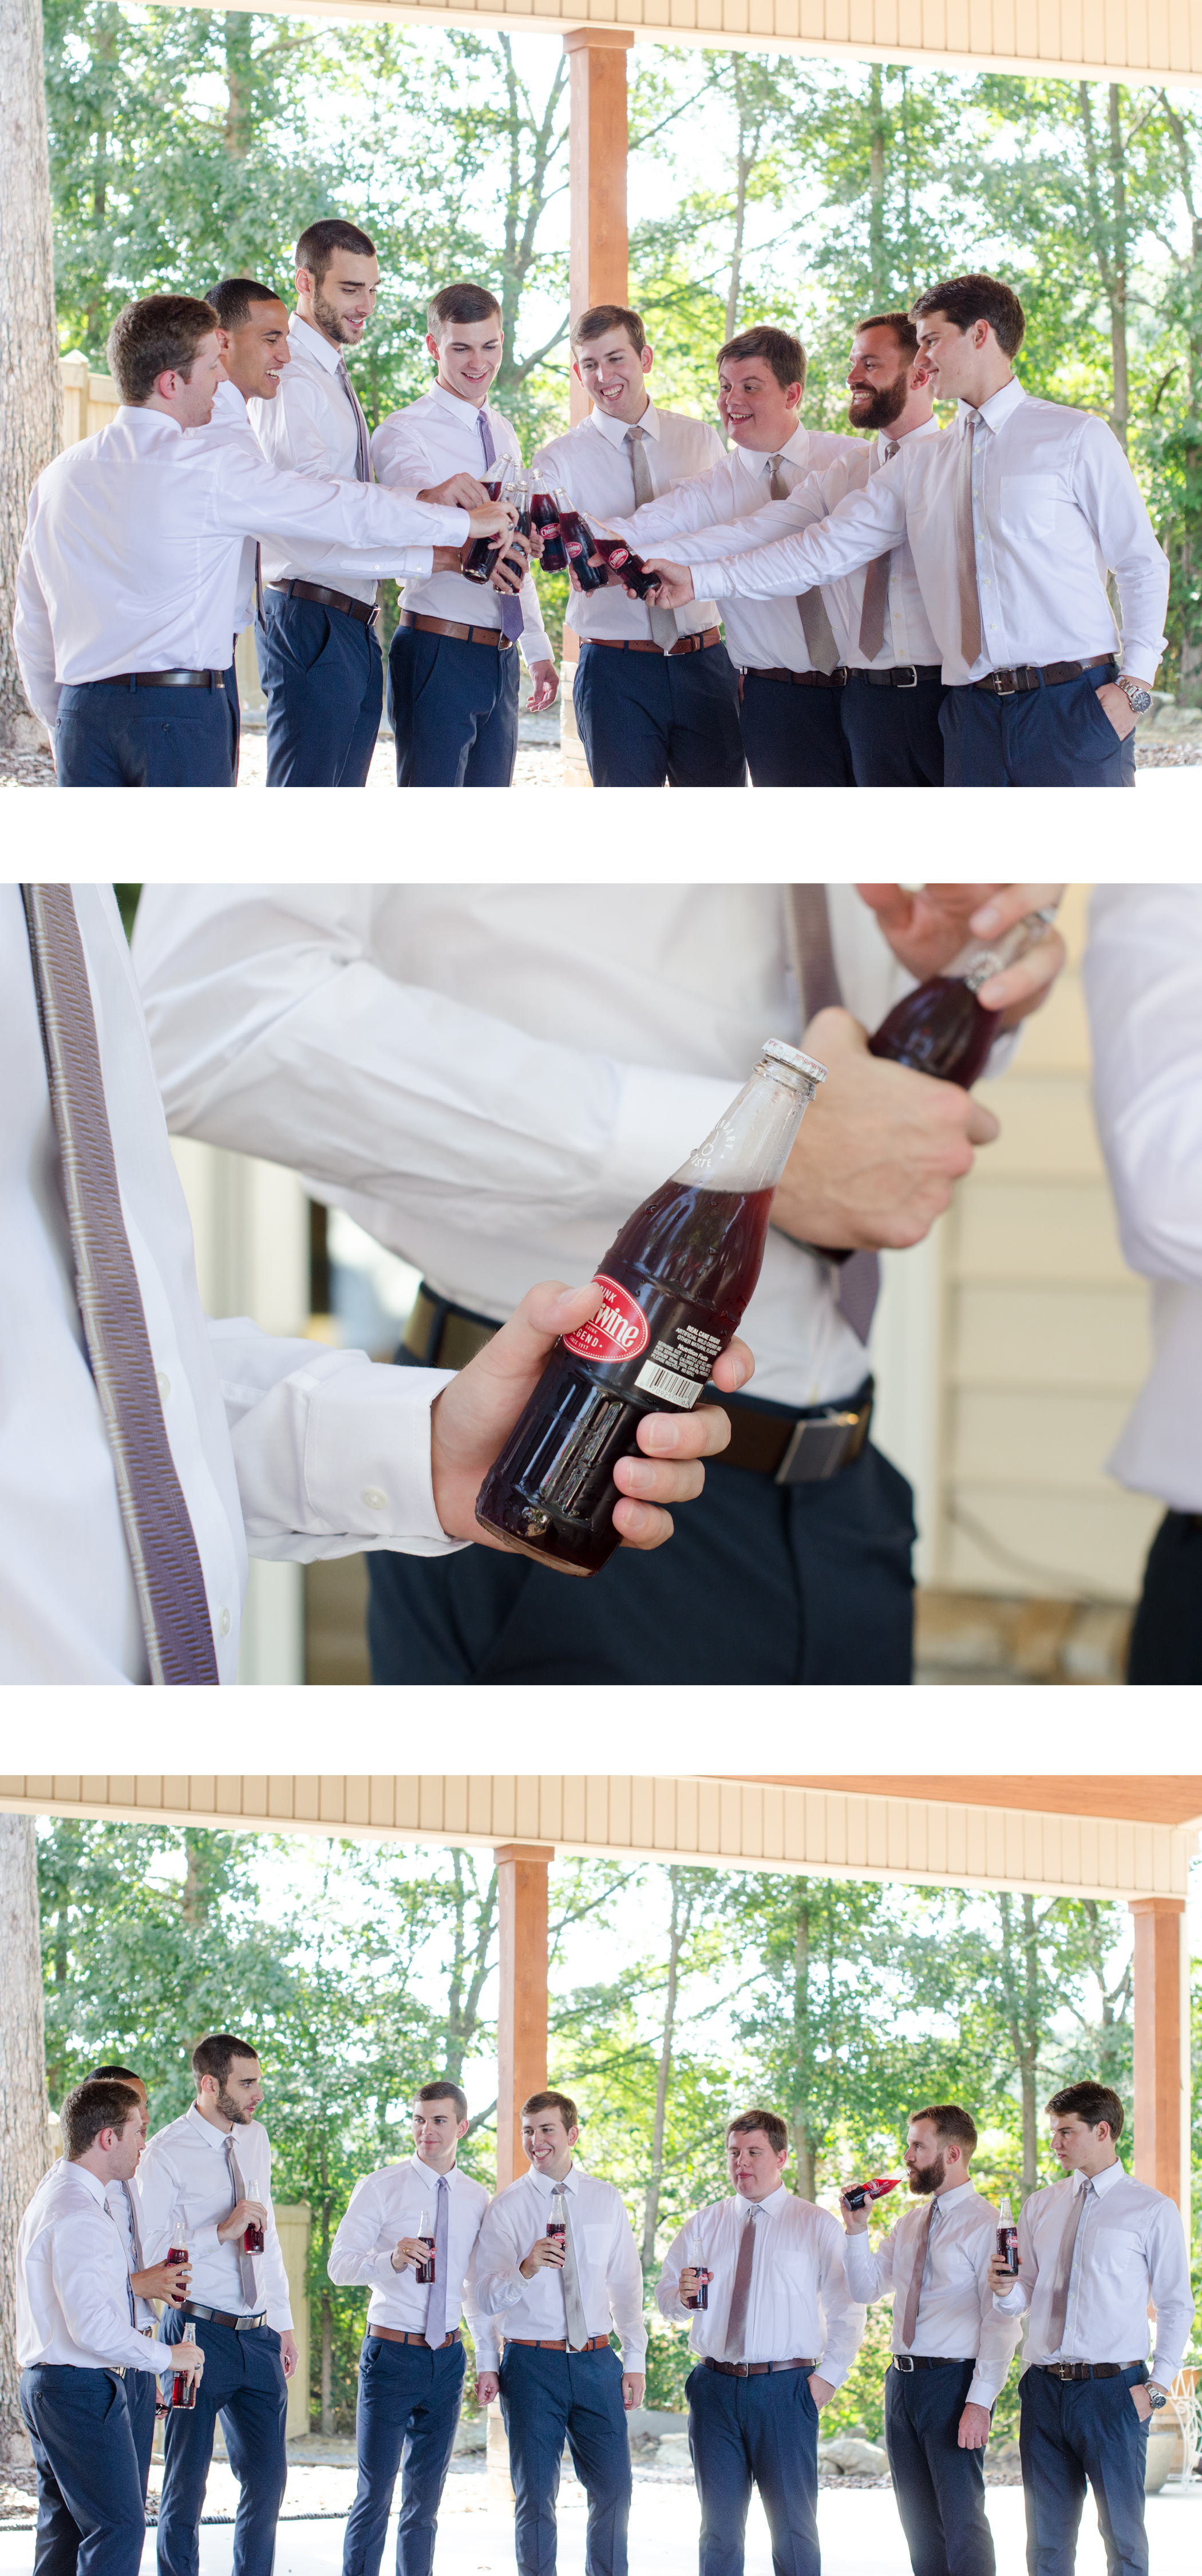 Jeremy LOVES his Cheerwine, almost as much as he loves Morgan. Morgan was so sweet and had glass bottled Cheerwine delivered to Jeremy while the boys were getting ready. She had no idea this would lead to  two of the groomsmen having red all over their crisp, white shirts.